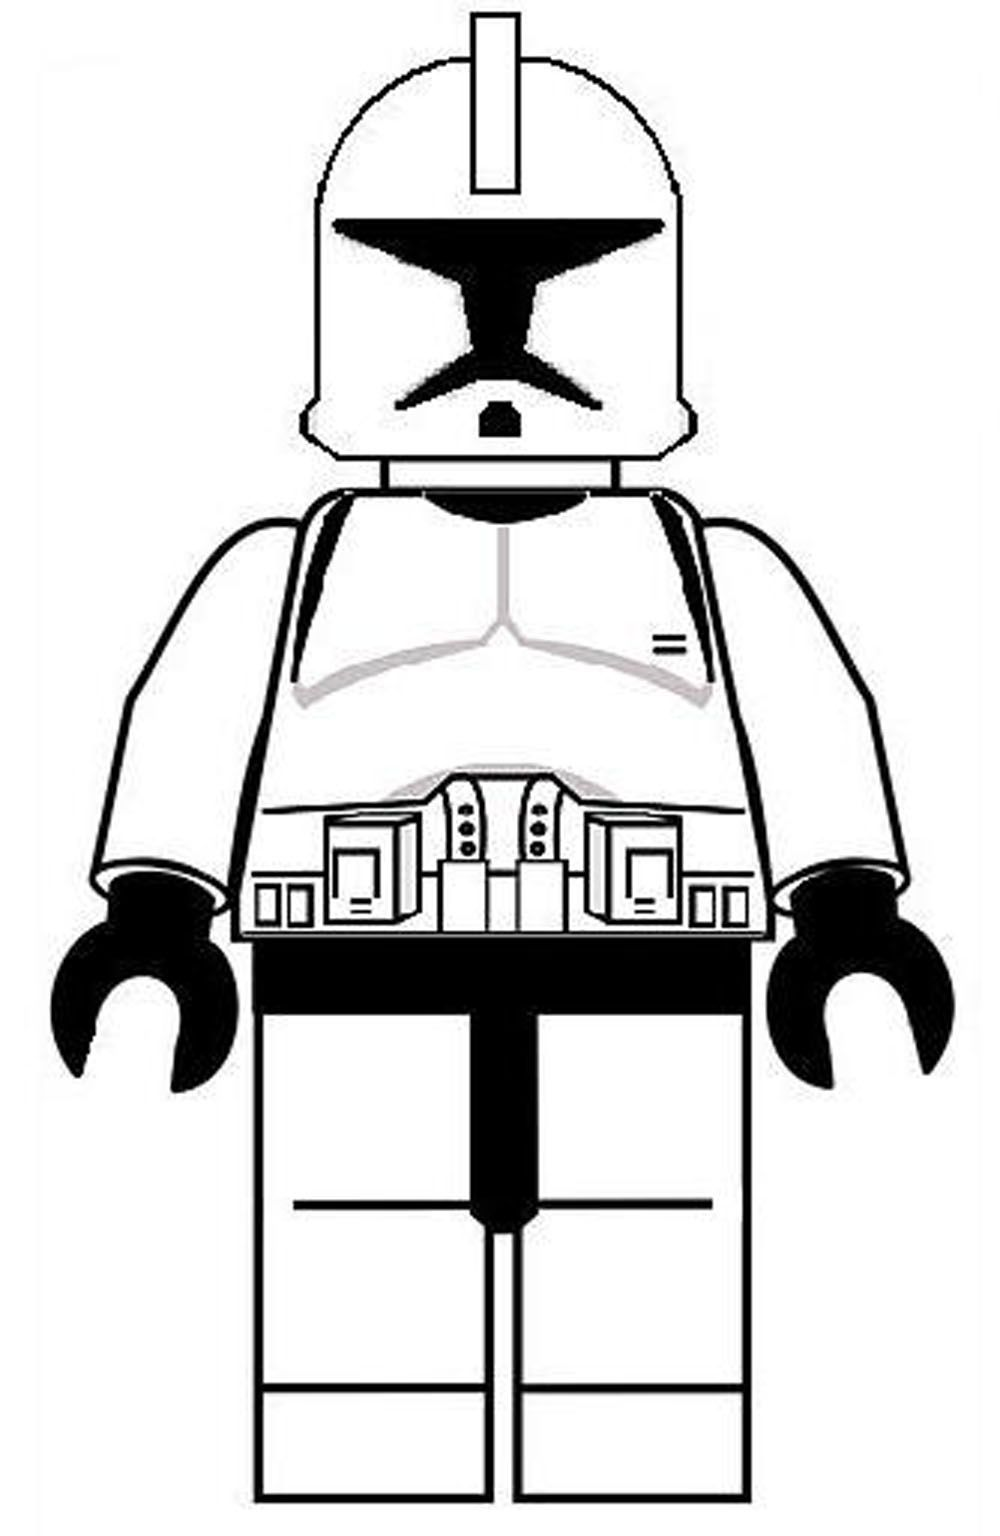 lego star wars coloring pages to print lego star wars coloring pages best coloring pages for kids to wars coloring print lego pages star